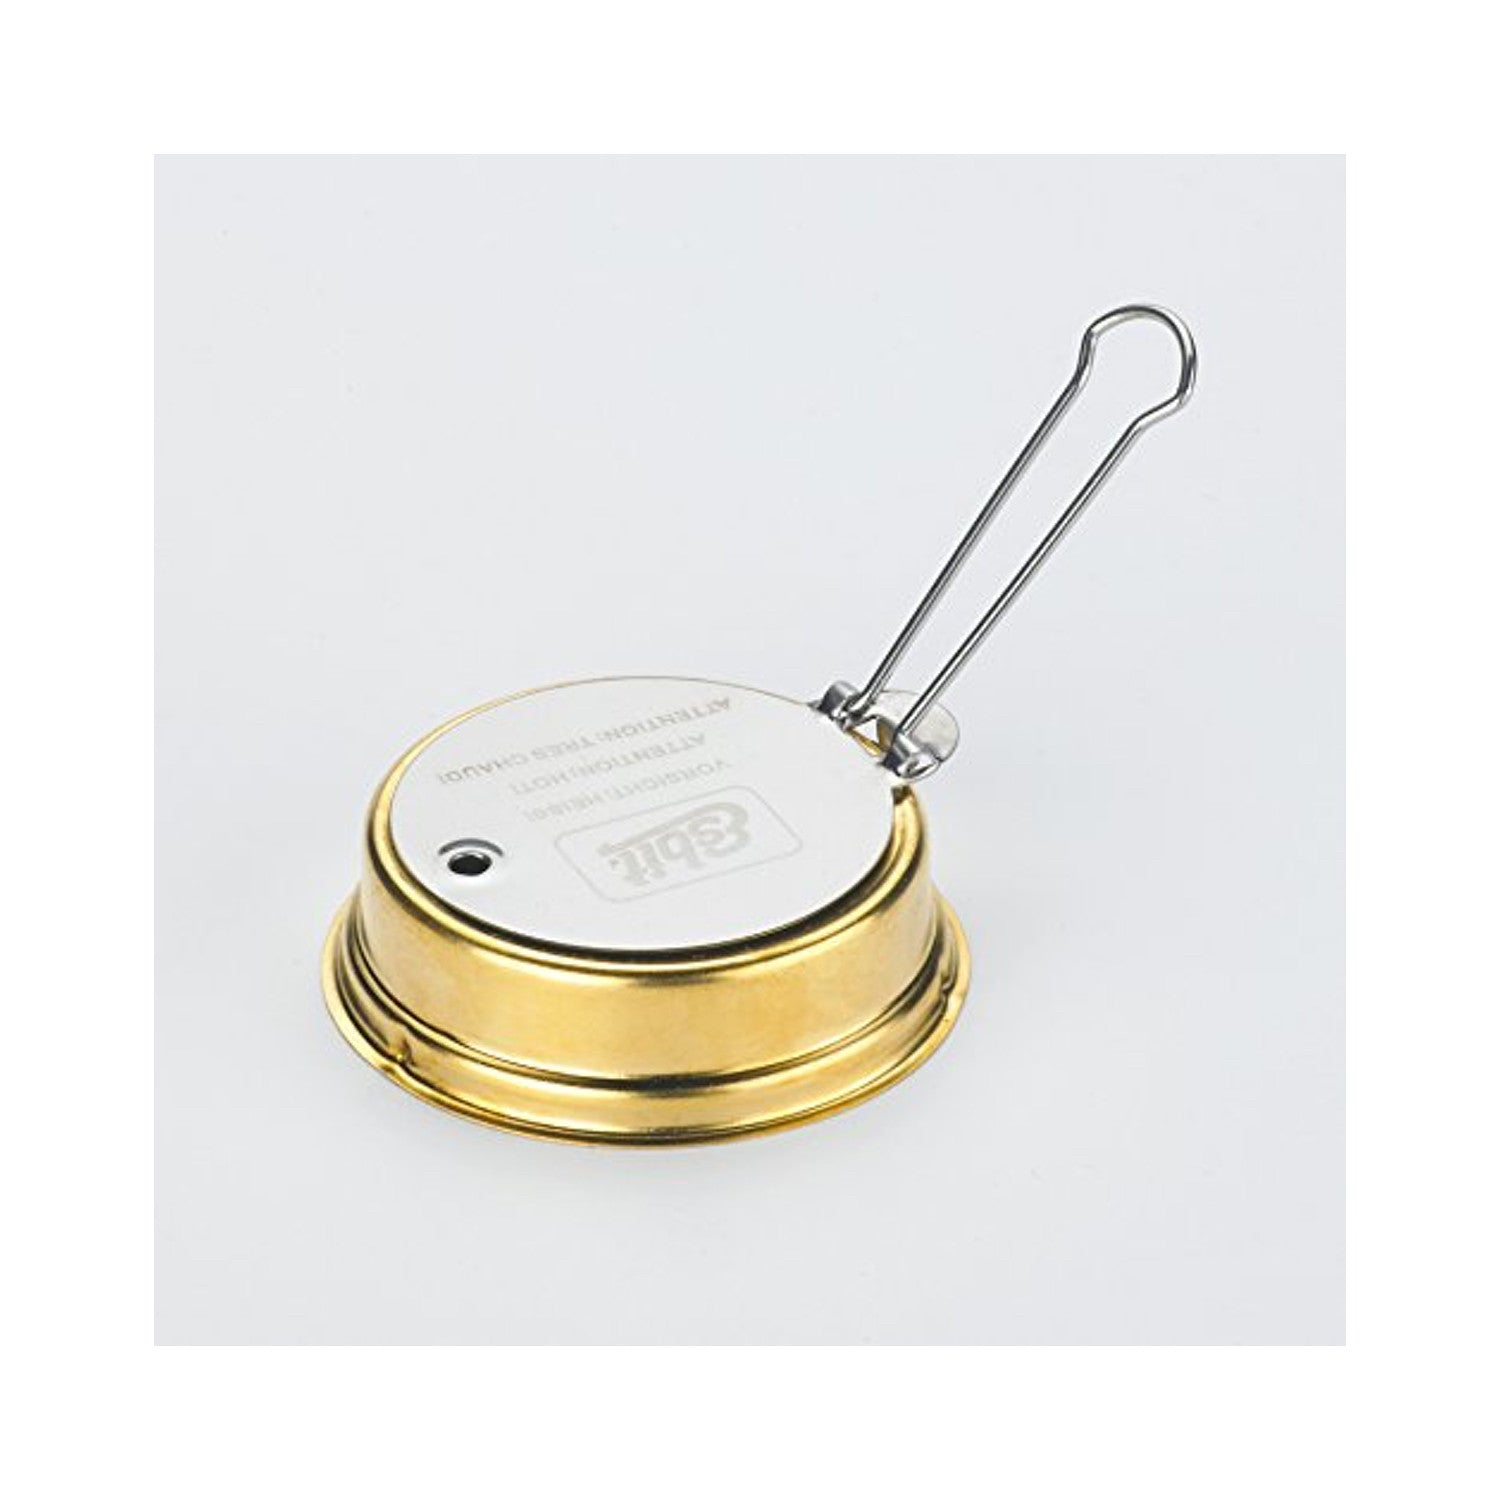 Esbit  Lightweight Trekking Cook Set with Brass Alcohol Burner Stove and 2 Anodized Aluminum Pots